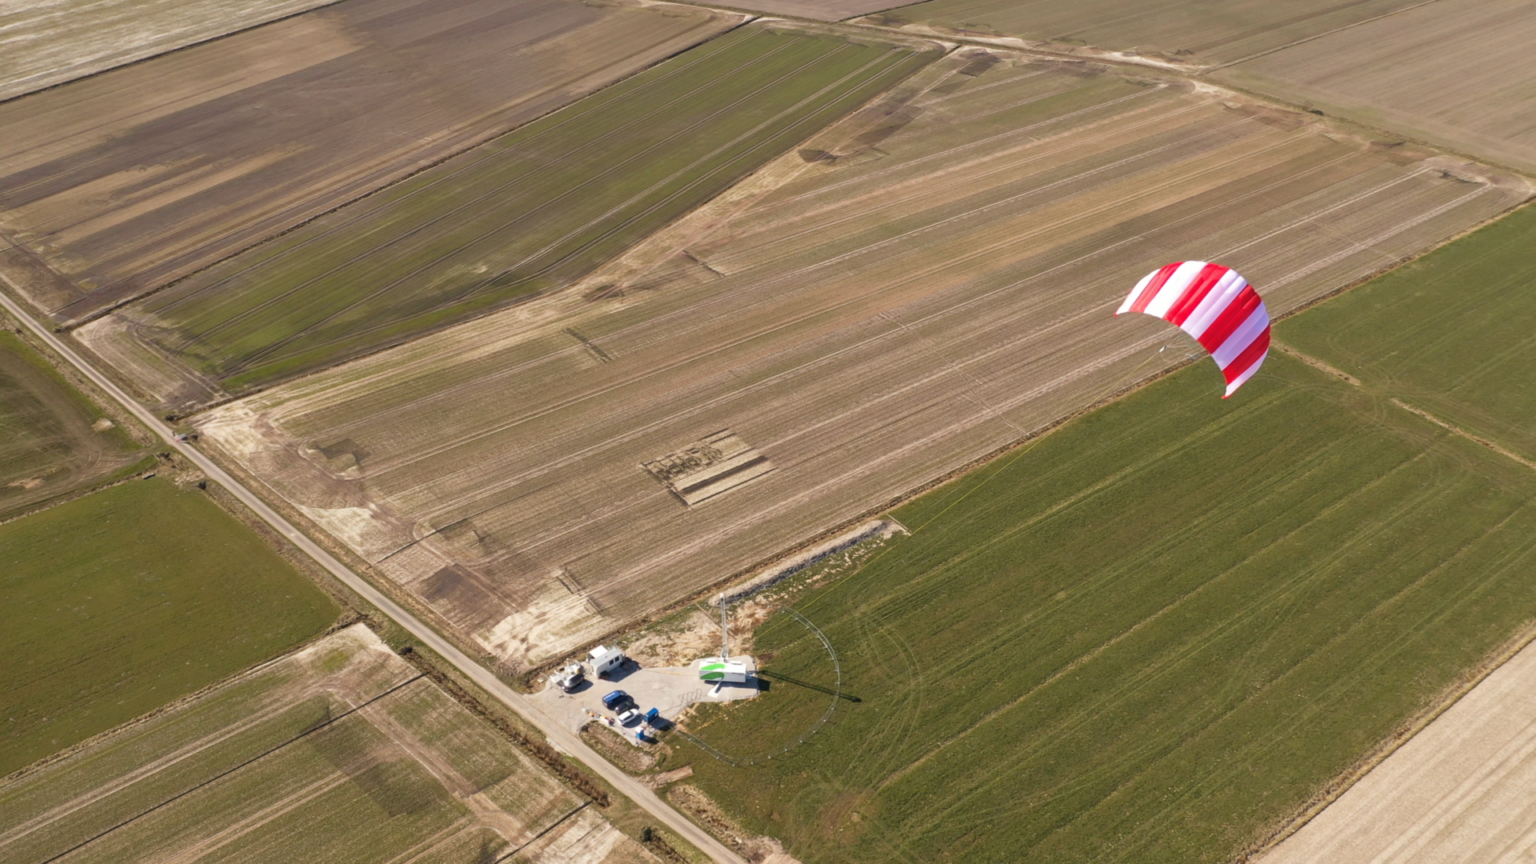 A power kite in an airborne wind energy system harvesting high-altitude wind.